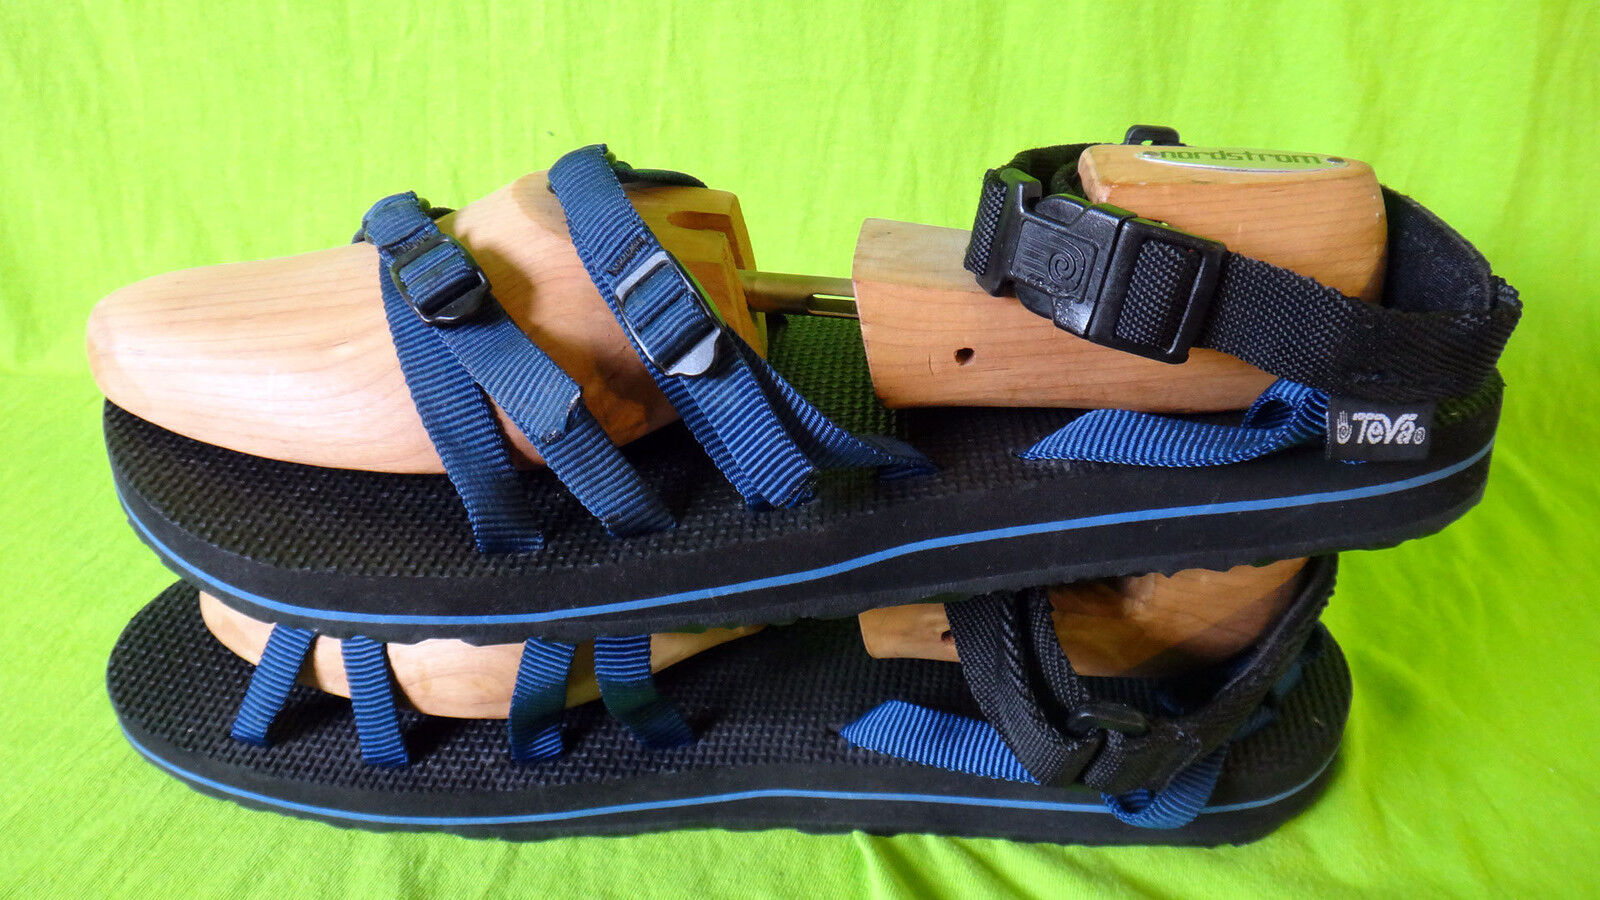 TEVA strap toe sandal sandal sandal US15 UK14 EU49 Jp325 blueE hiking water thong slipper shoe 4f12a2